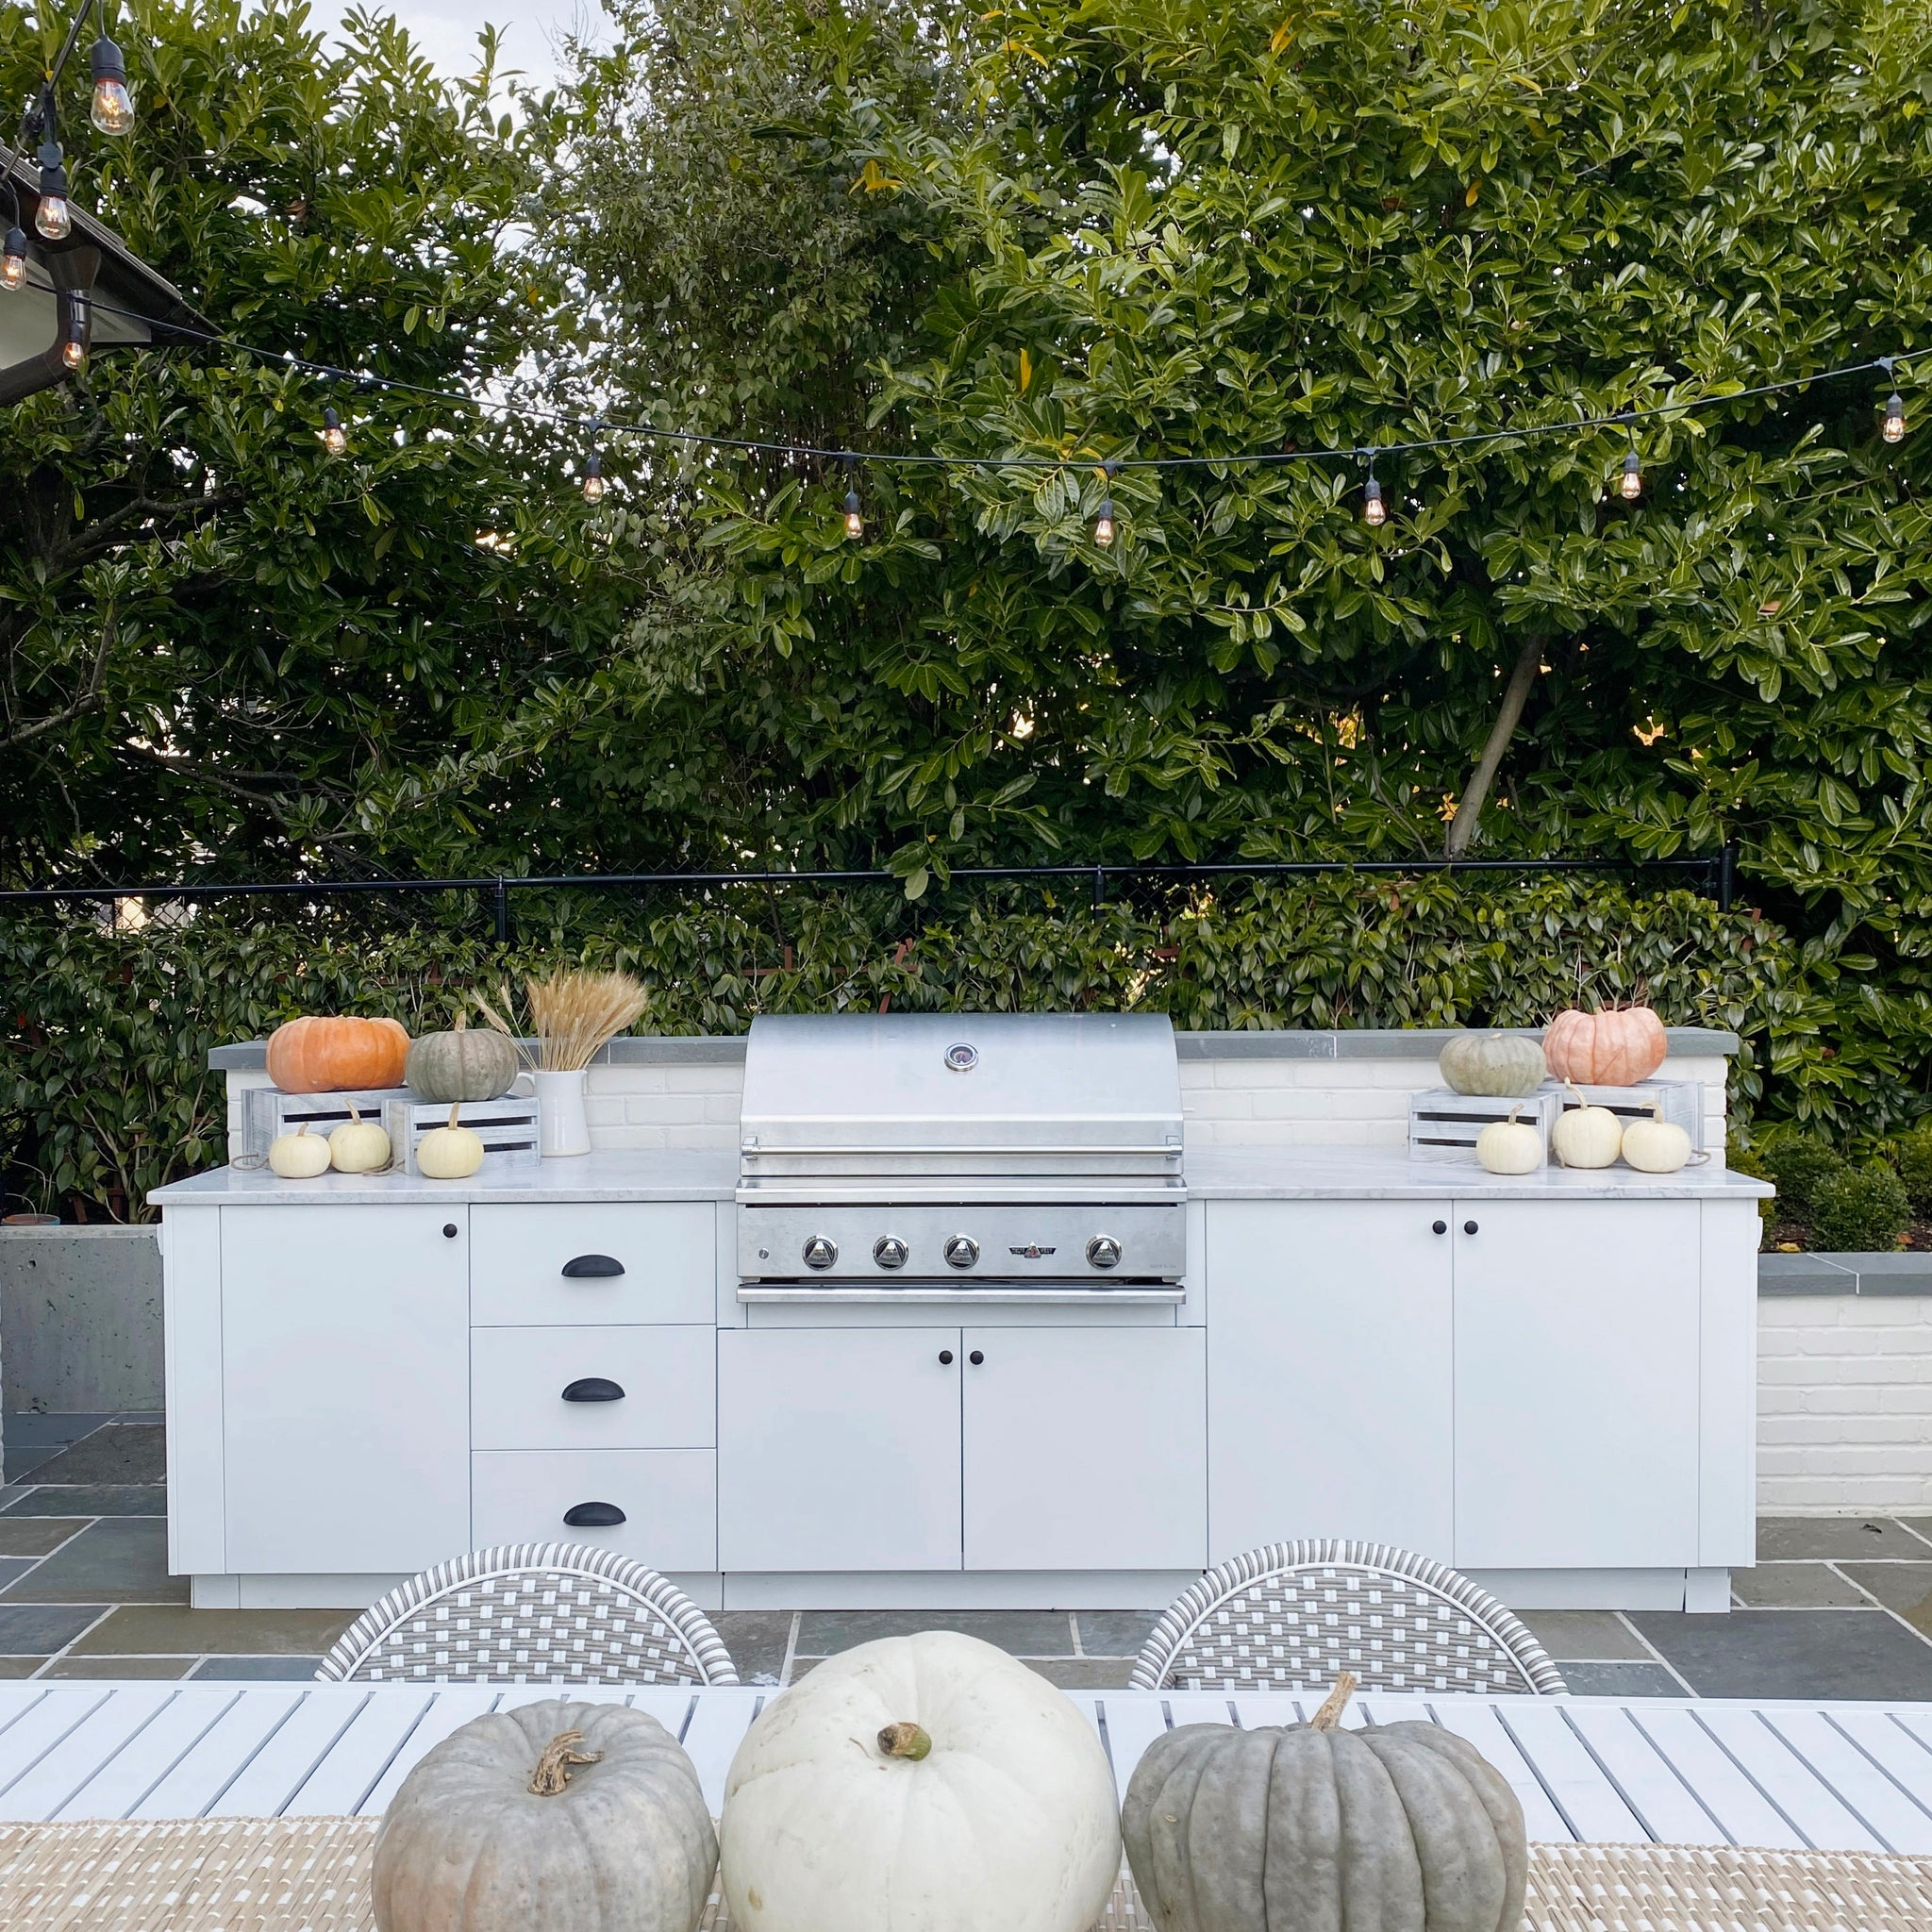 A Look at Your Kitchen Outdoors | At Home with Kristine Lee of Cozy and Kin